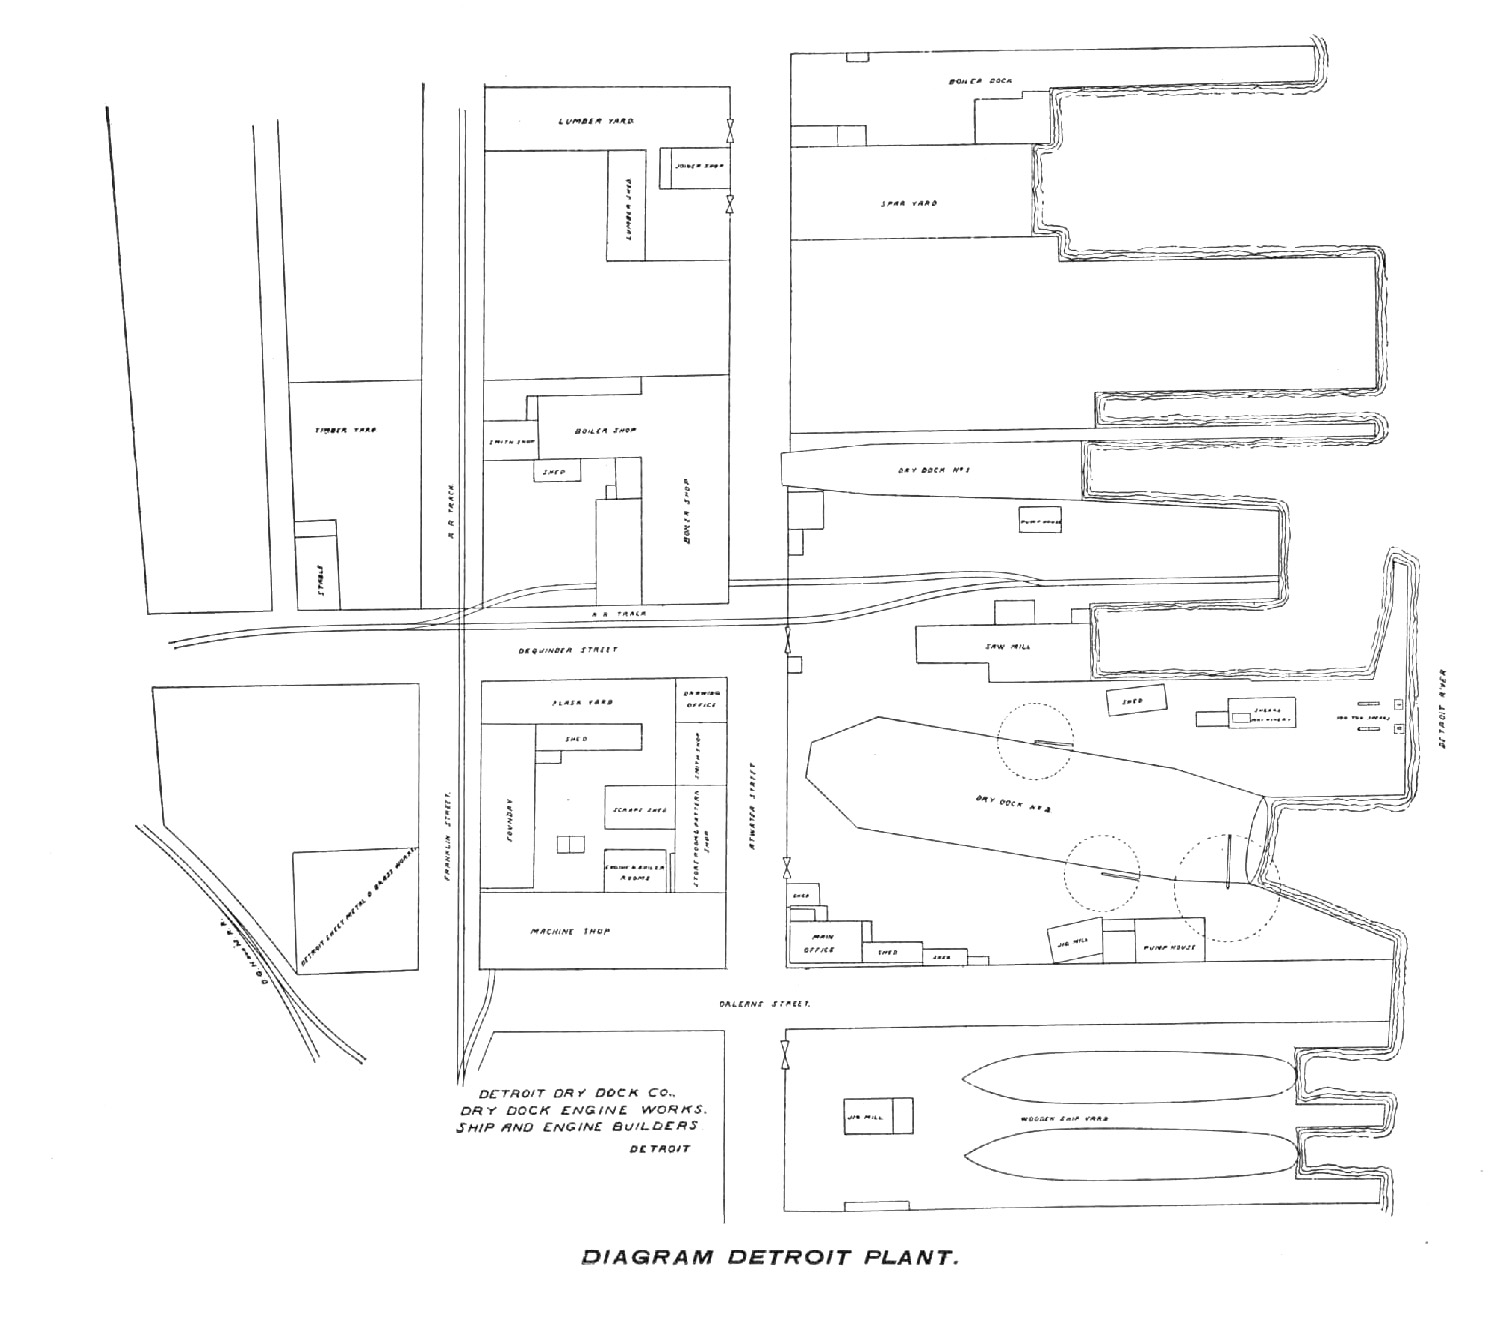 Dry Dock Diagram Wiring Harness Schematics For A Boat Diagrams File Plant Detroit Docks C 1894 Wikimedia Commons Rh Org Chart Loading Plates